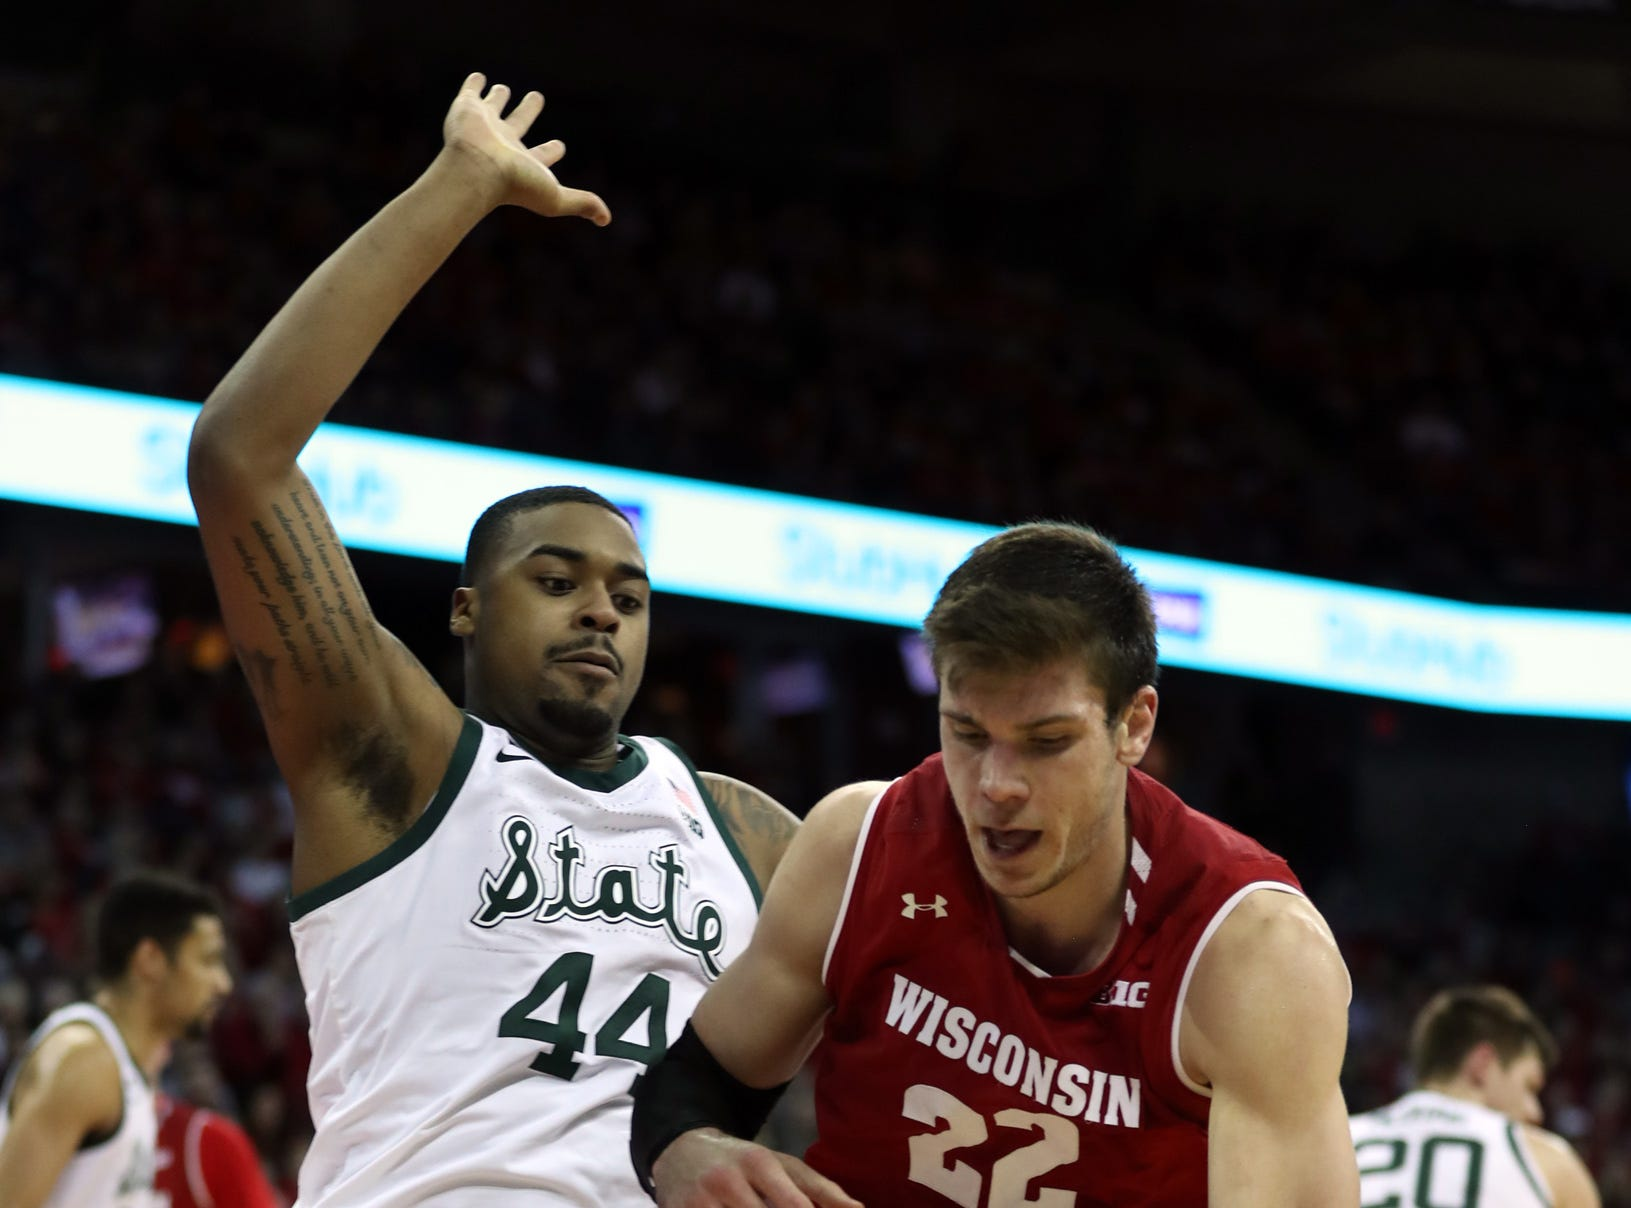 Wisconsin Badgers forward Ethan Happ (22) dribbles the ball as Michigan State Spartans forward Nick Ward (44) defends during the second half at the Kohl Center.